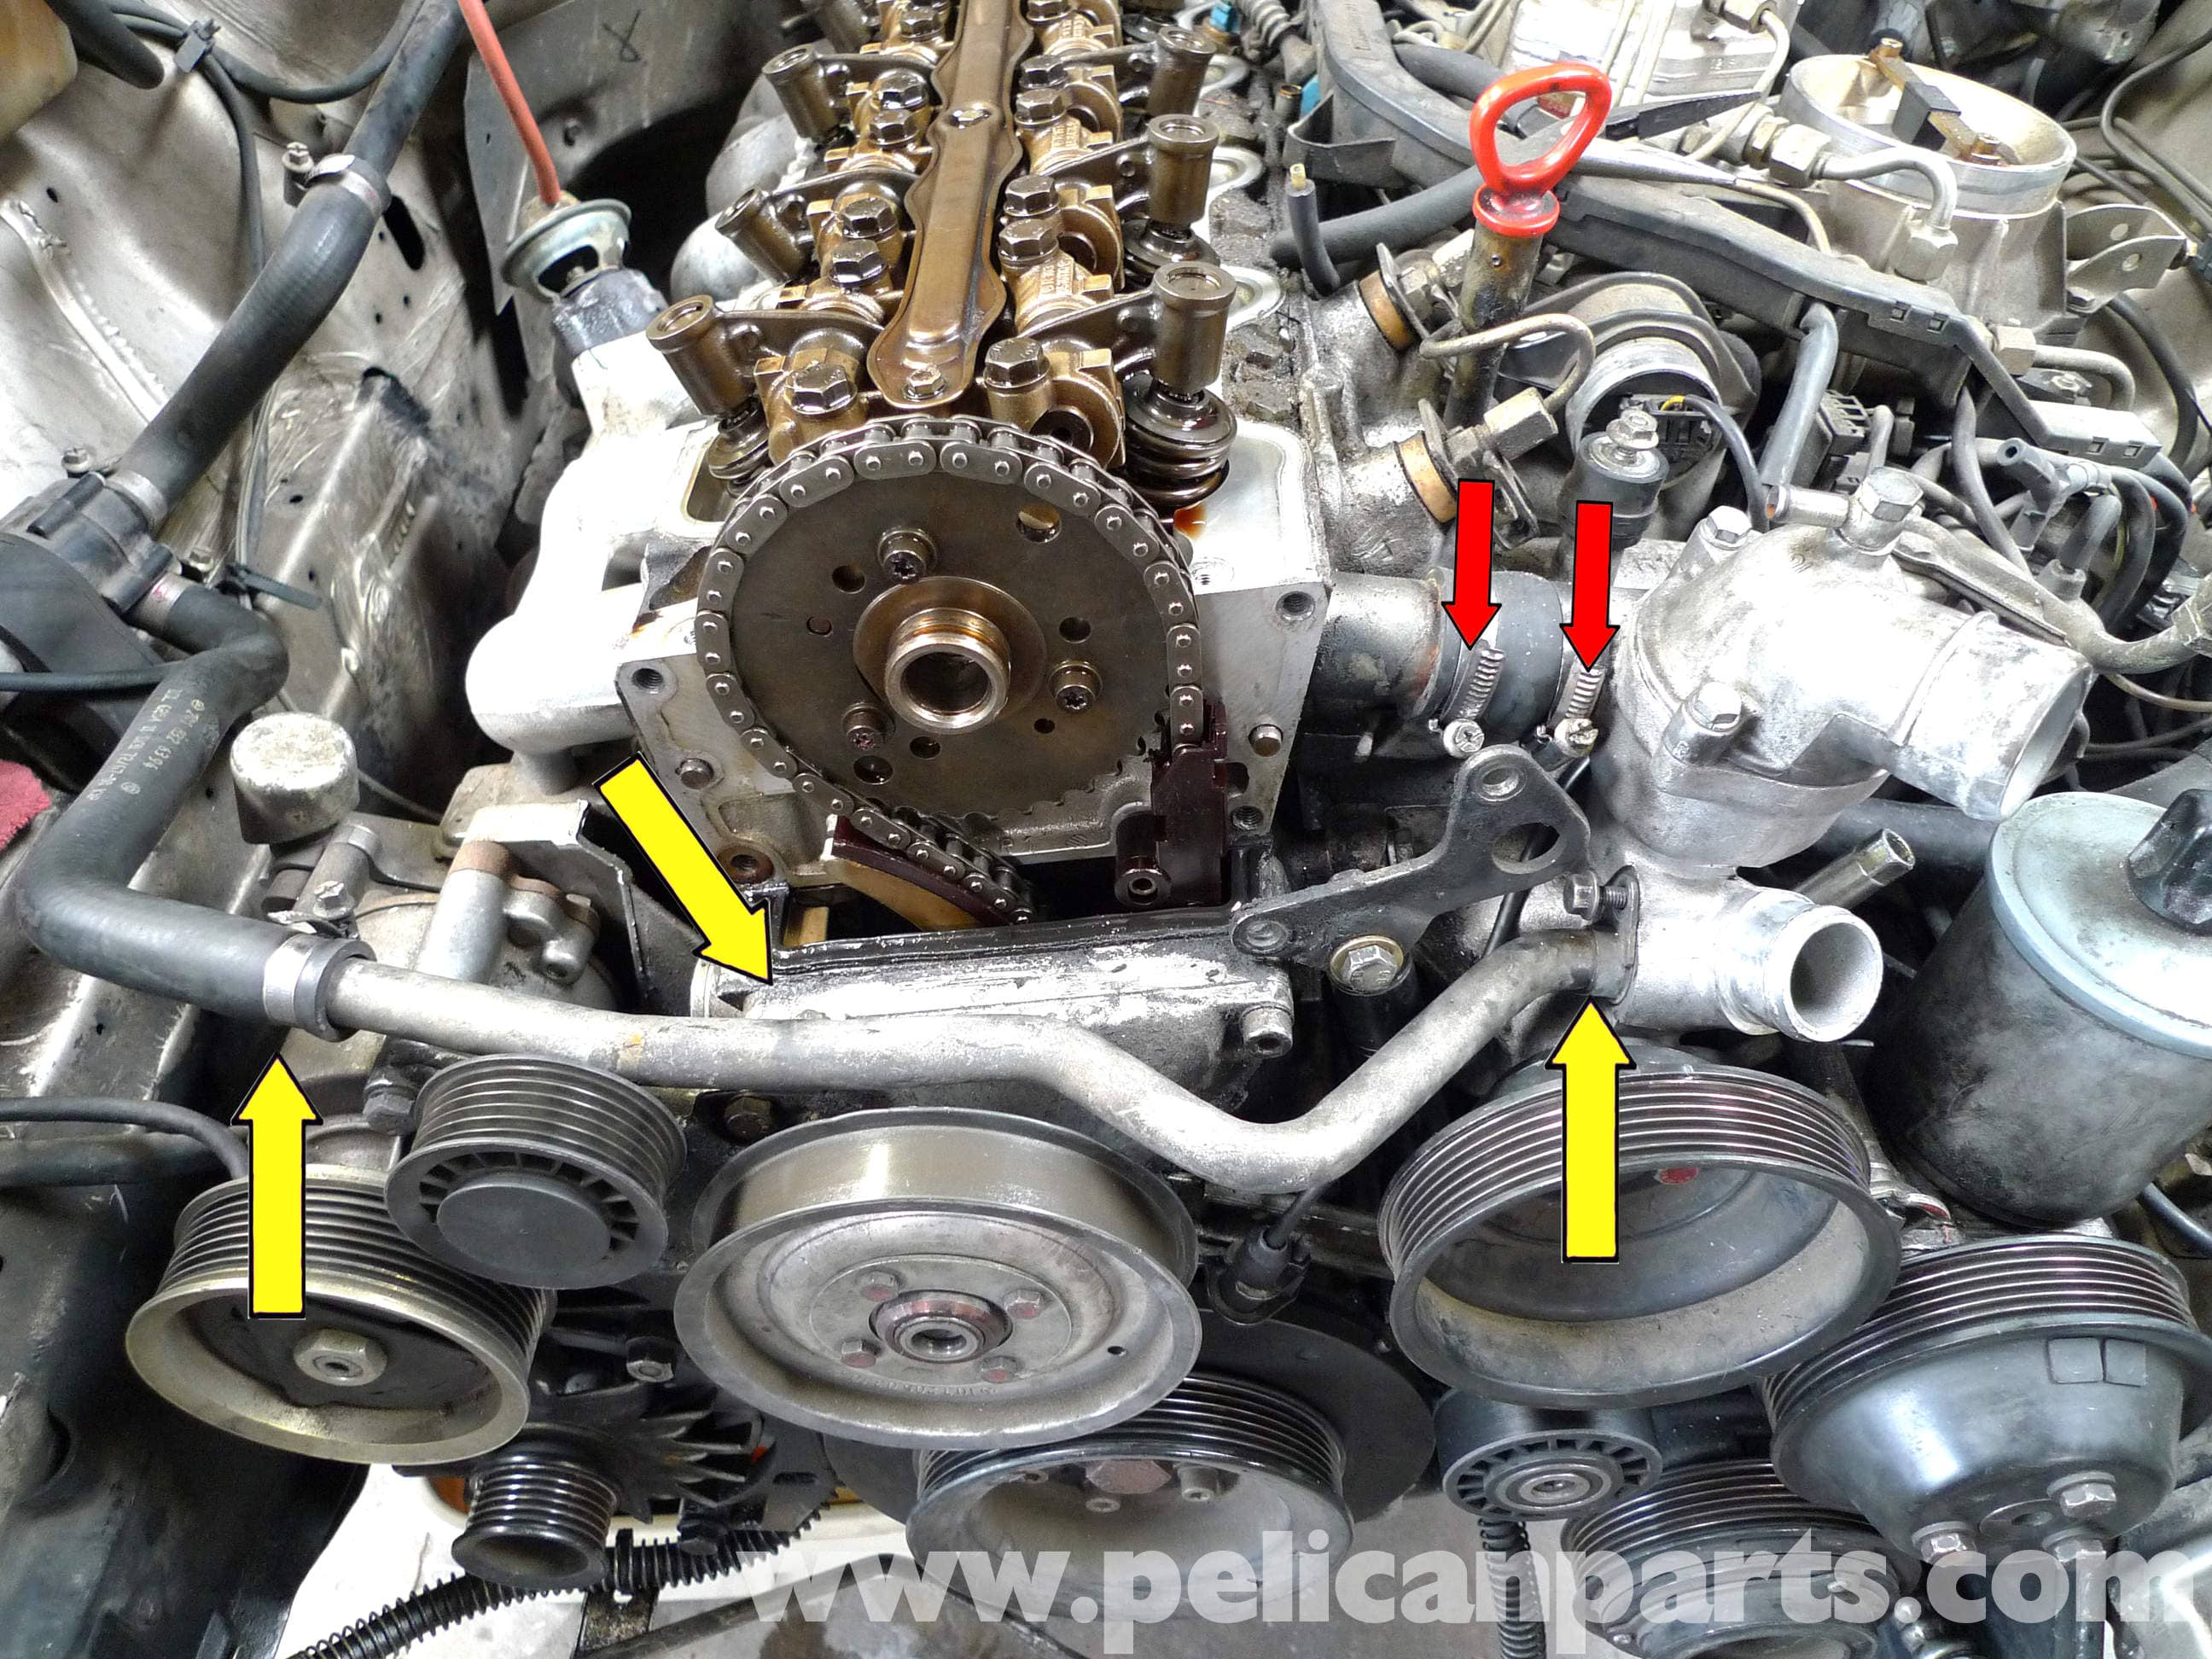 1997 Buick Lesabre System Wiring Diagram Download Document Buzz